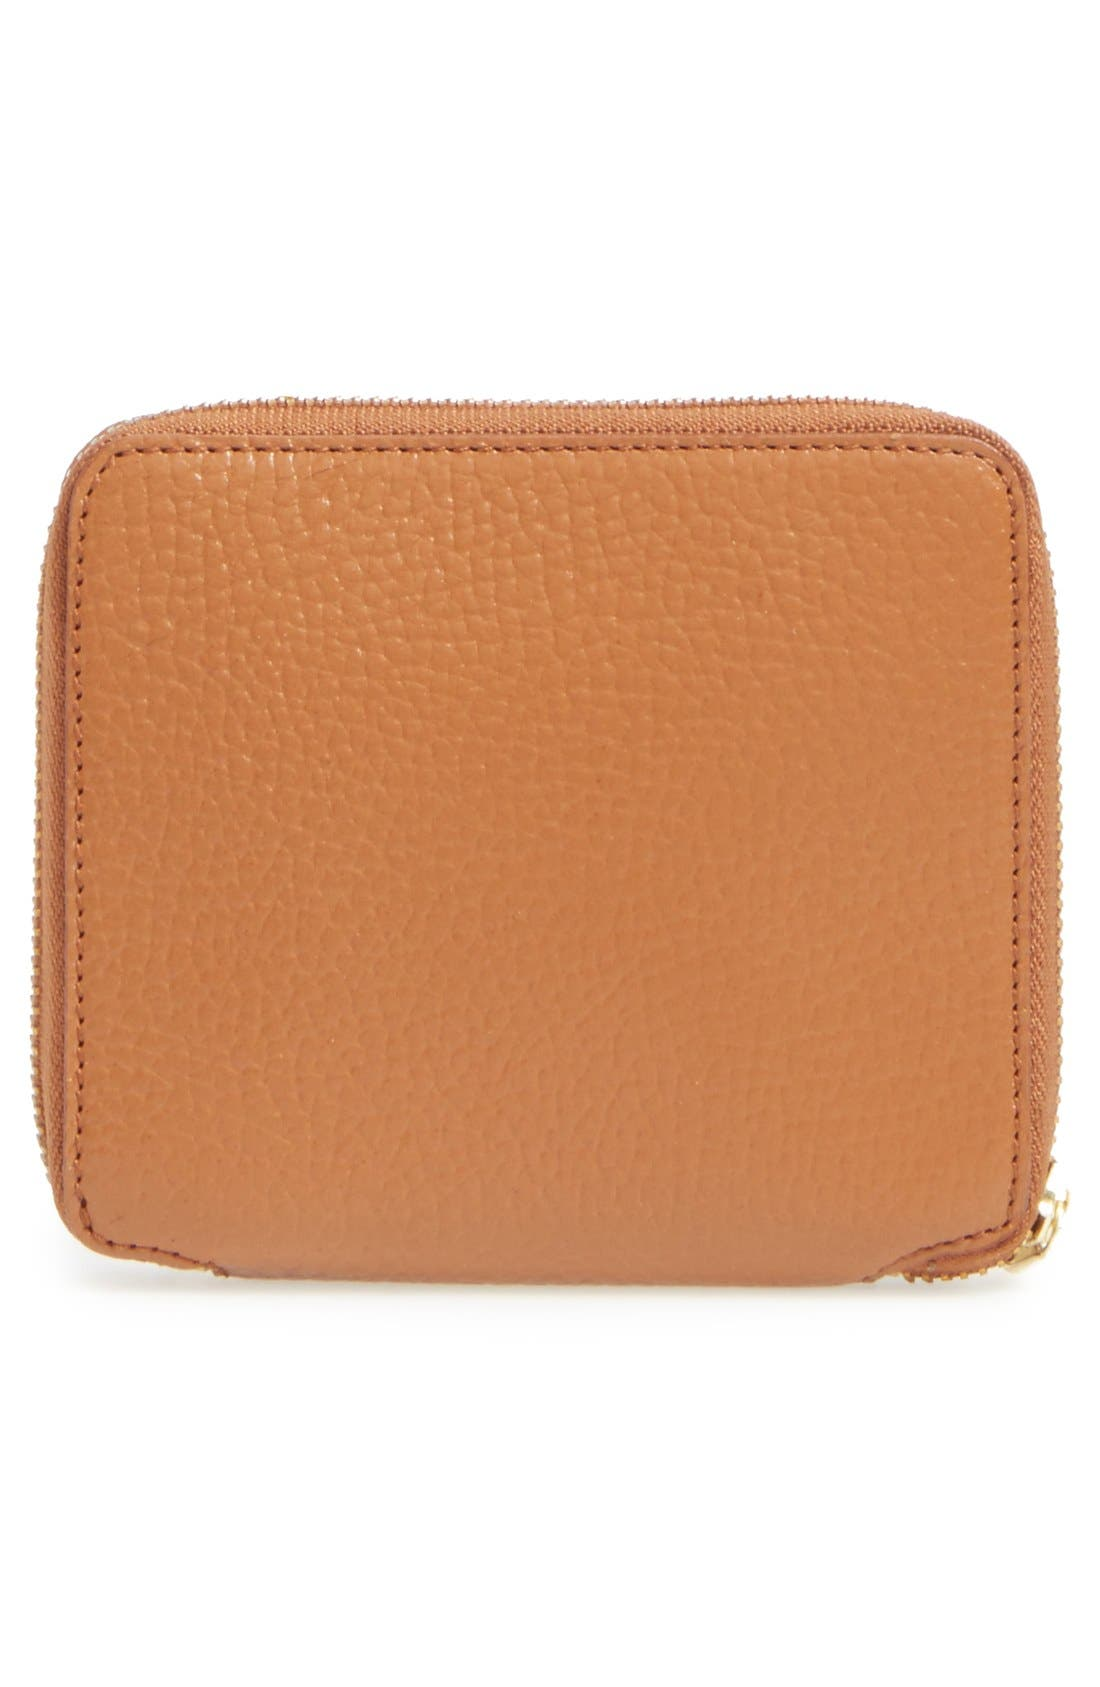 Leather Wallet,                             Alternate thumbnail 3, color,                             Brown/ Orange